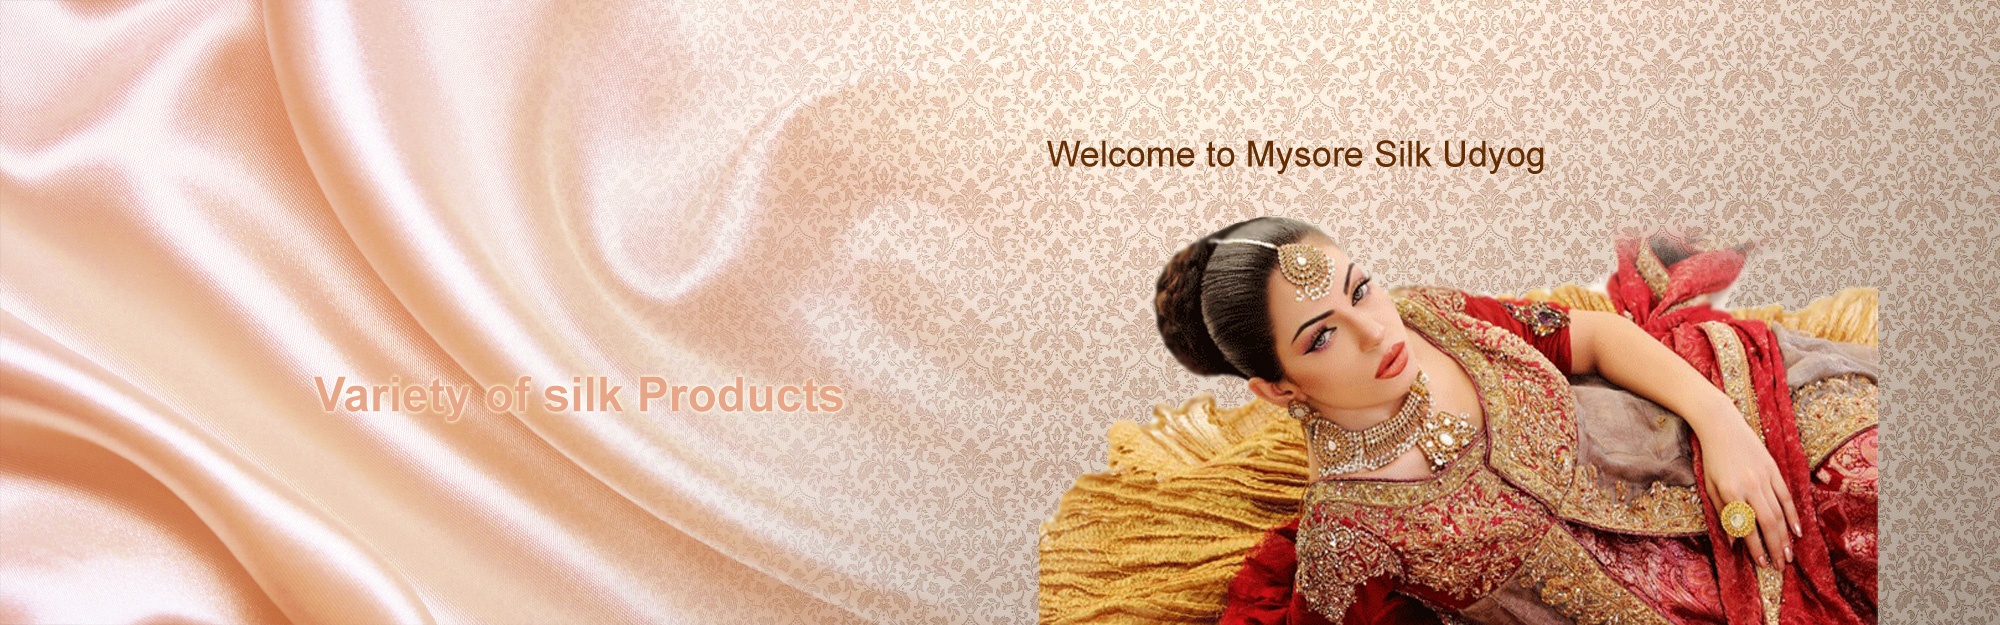 Welcome to Mysore Silk Udyog